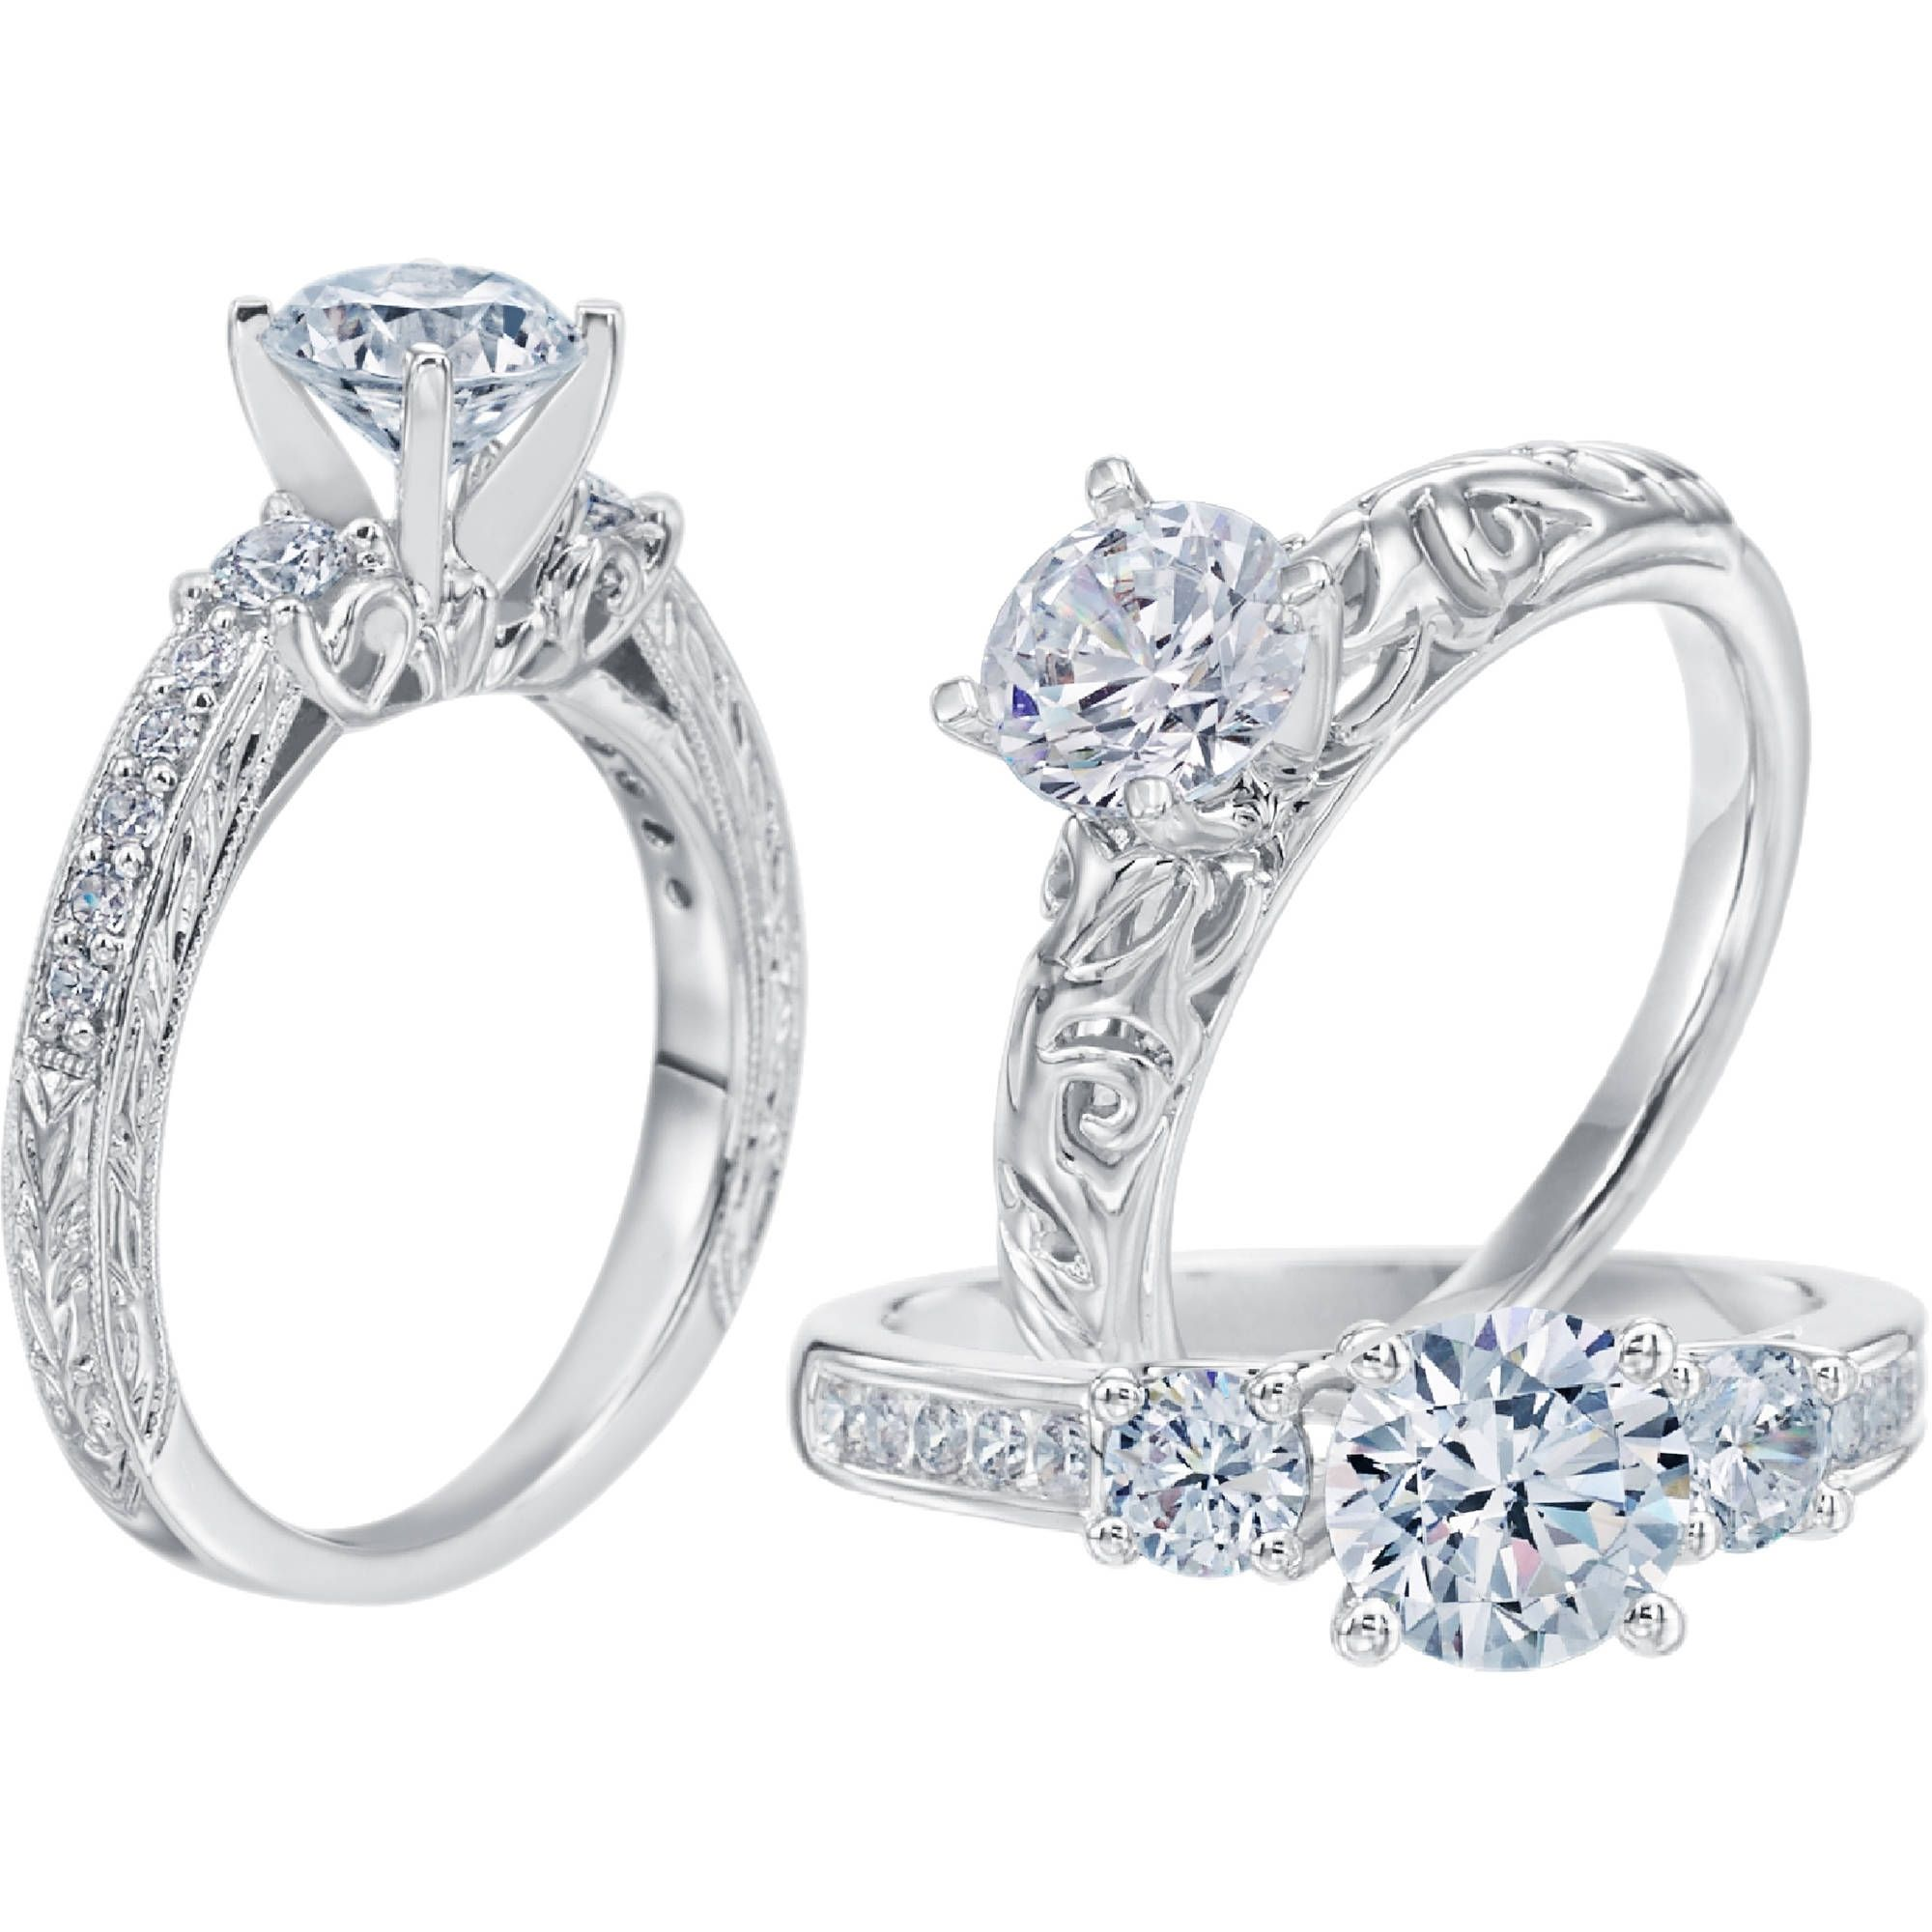 Design Your Own Engagement Ring in 2020 Diamond